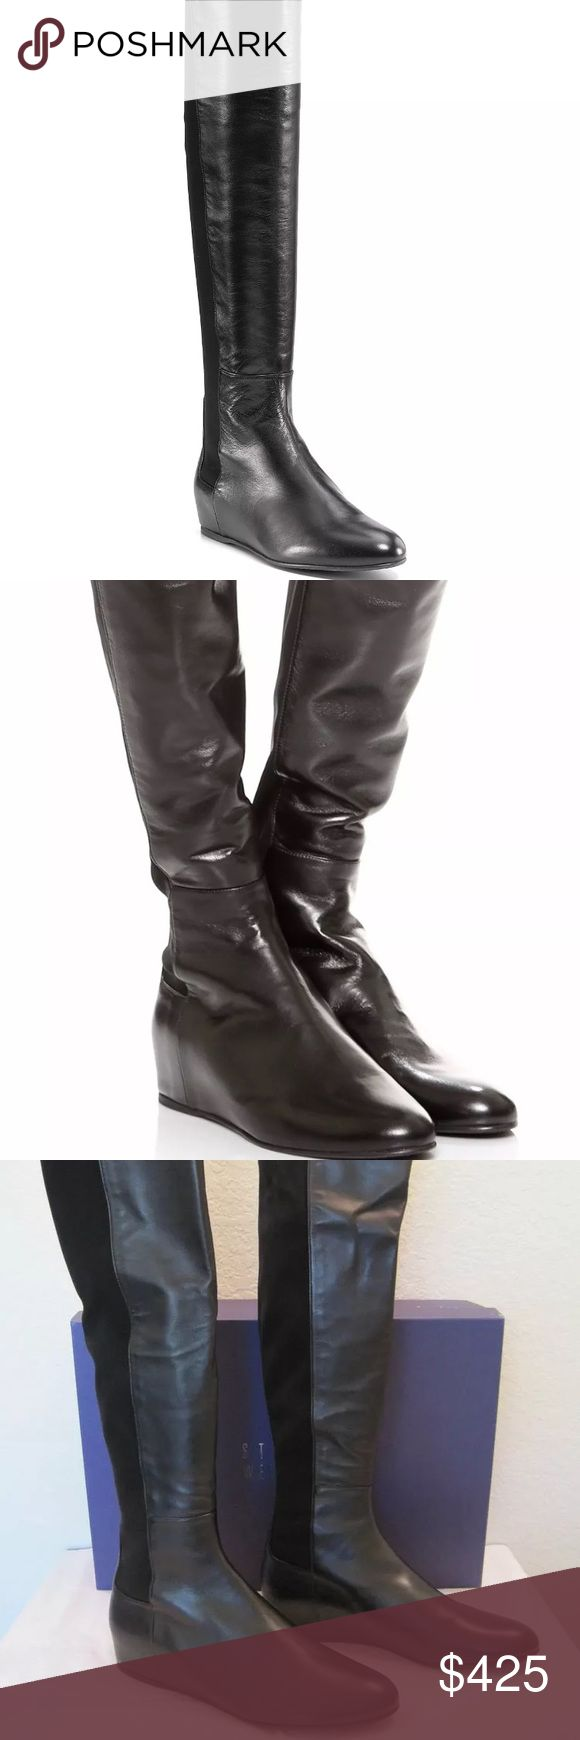 Stuart Weitzman Mainline OTK 50/50 Nappa Black 9.5 NEW ONLY TRIED ON Stuart Weitzman Mainline OTK 50/50 Nappa Black 9.5. Offers accepted. No trade. Stuart Weitzman Shoes Over the Knee Boots